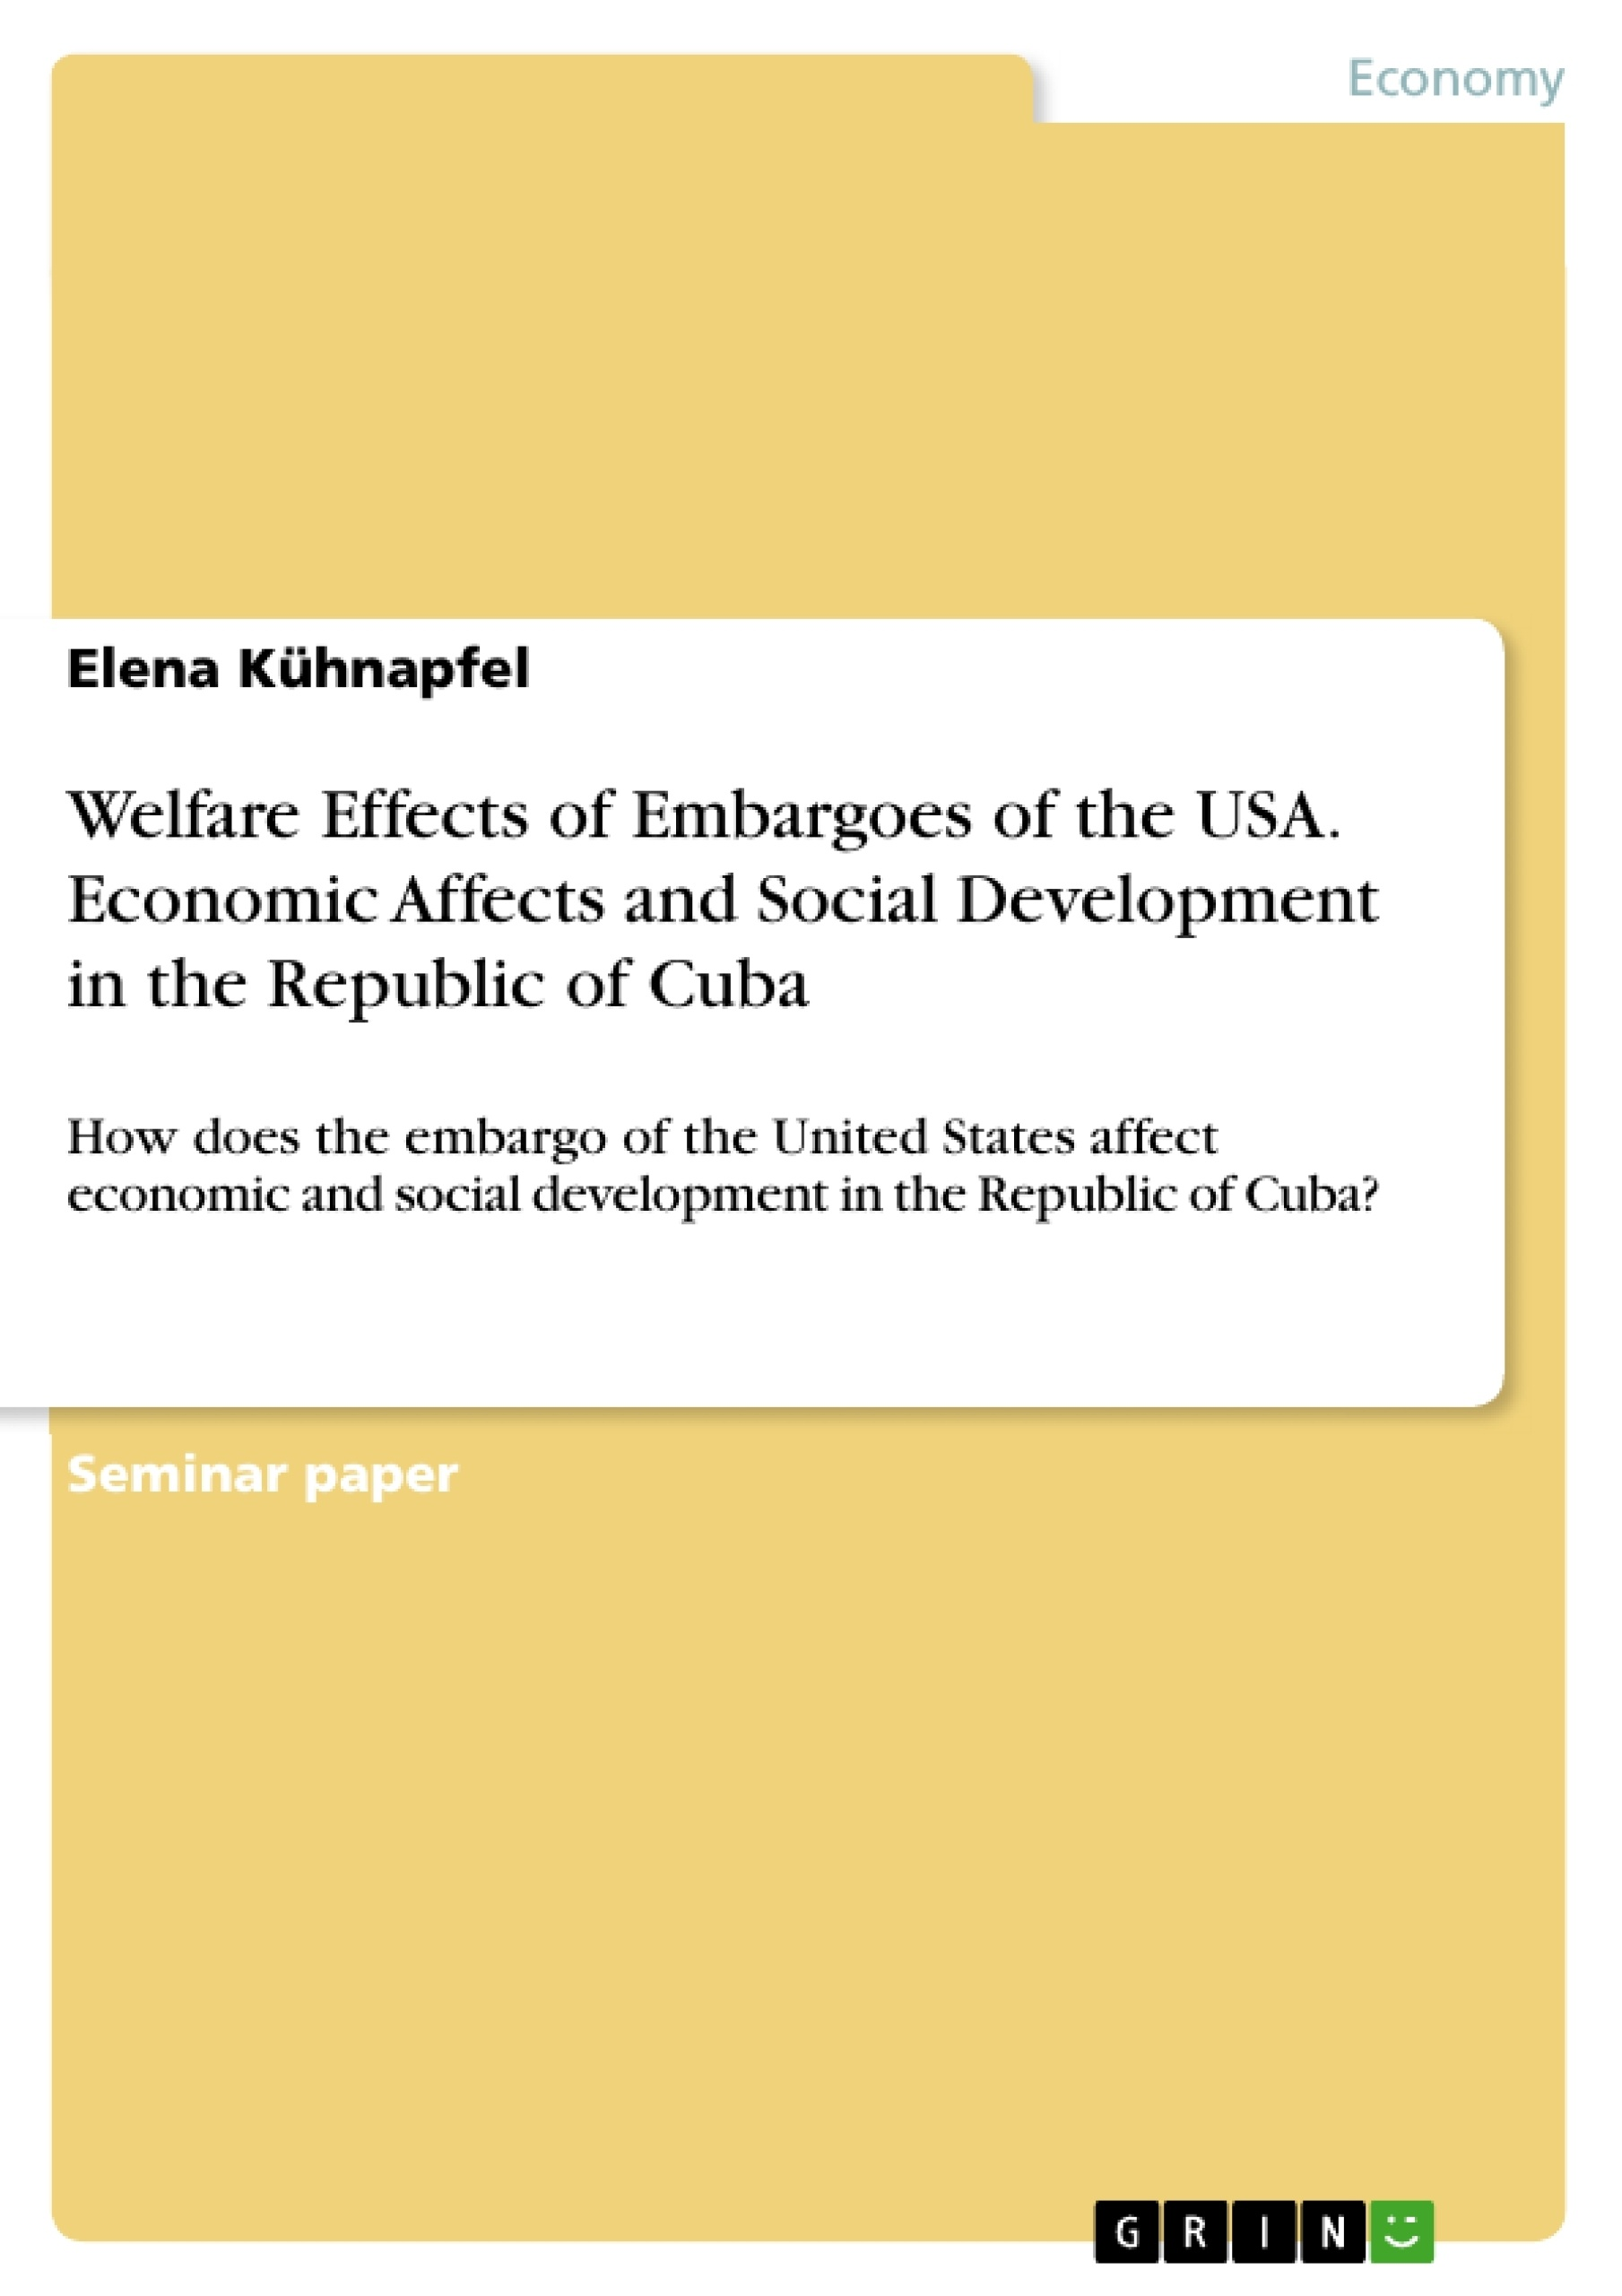 Title: Welfare Effects of Embargoes of the USA. Economic Affects and Social Development in the Republic of Cuba